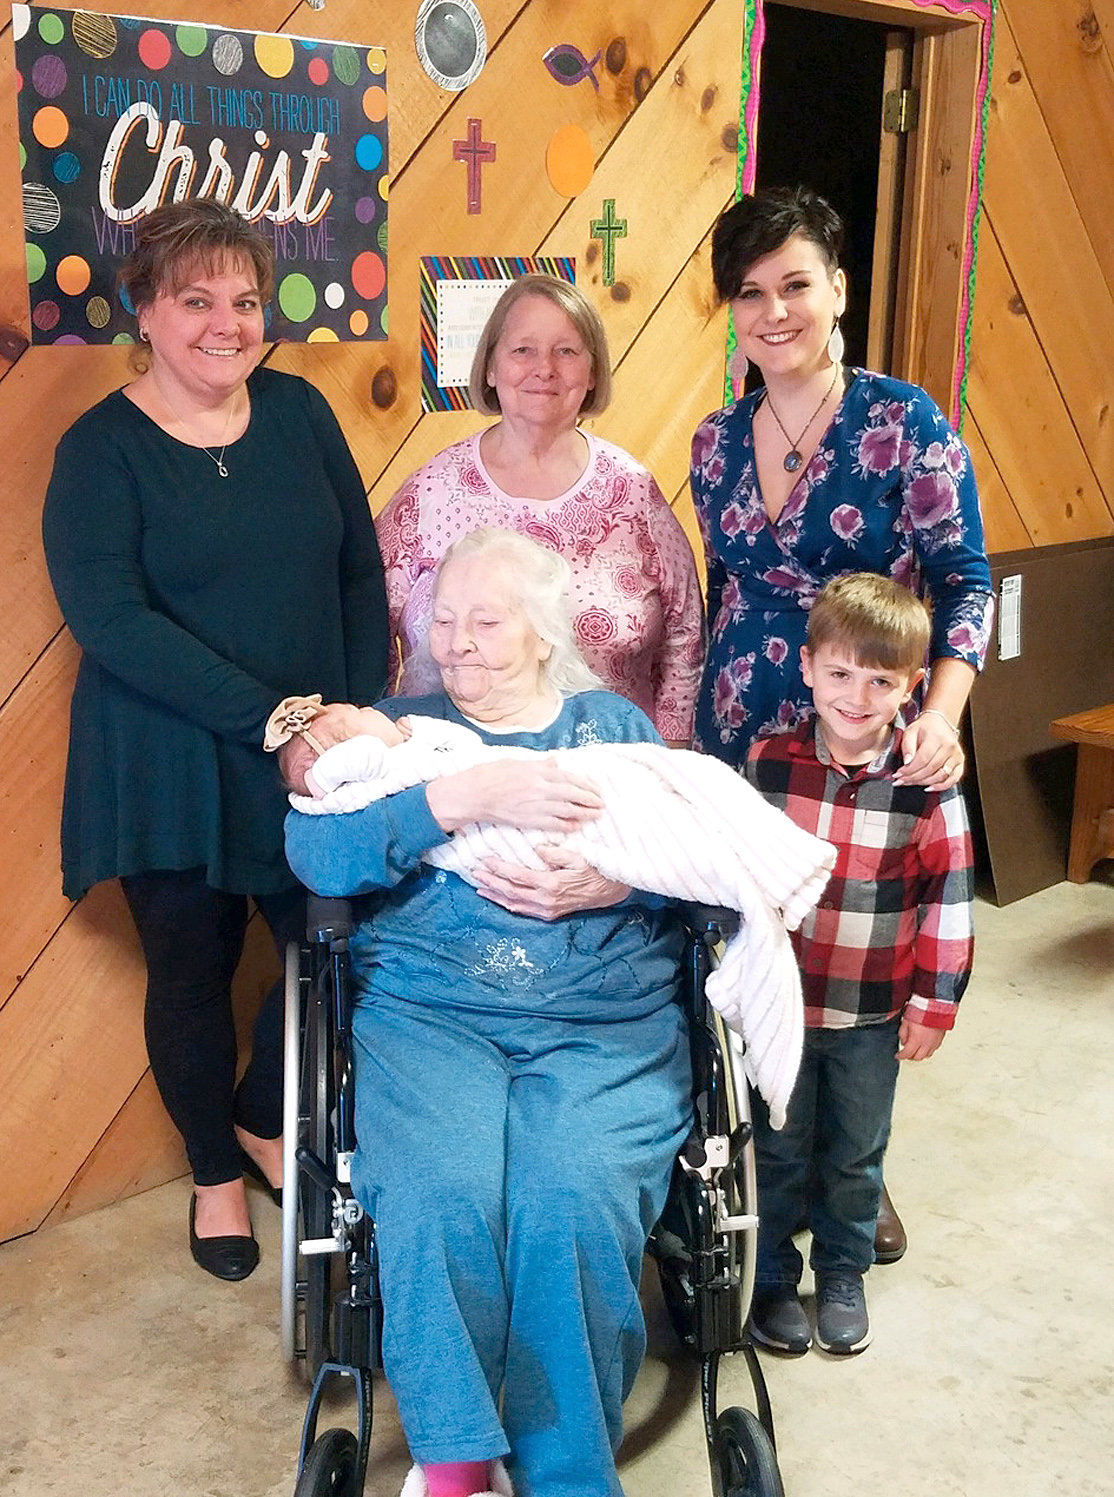 Five generations of the Wooden family gathered on Thanksgiving Day at Bradley Healthcare and Rehabilitation. Seated are Myrtle Wooden, great-great-grandmother, holding baby Scarlet Stephens. From left standing are Tammy Lombardi, grandmother, Judy Parker, great-grandmother, and Myranda Stephens, mom, with Kylan Cooper.